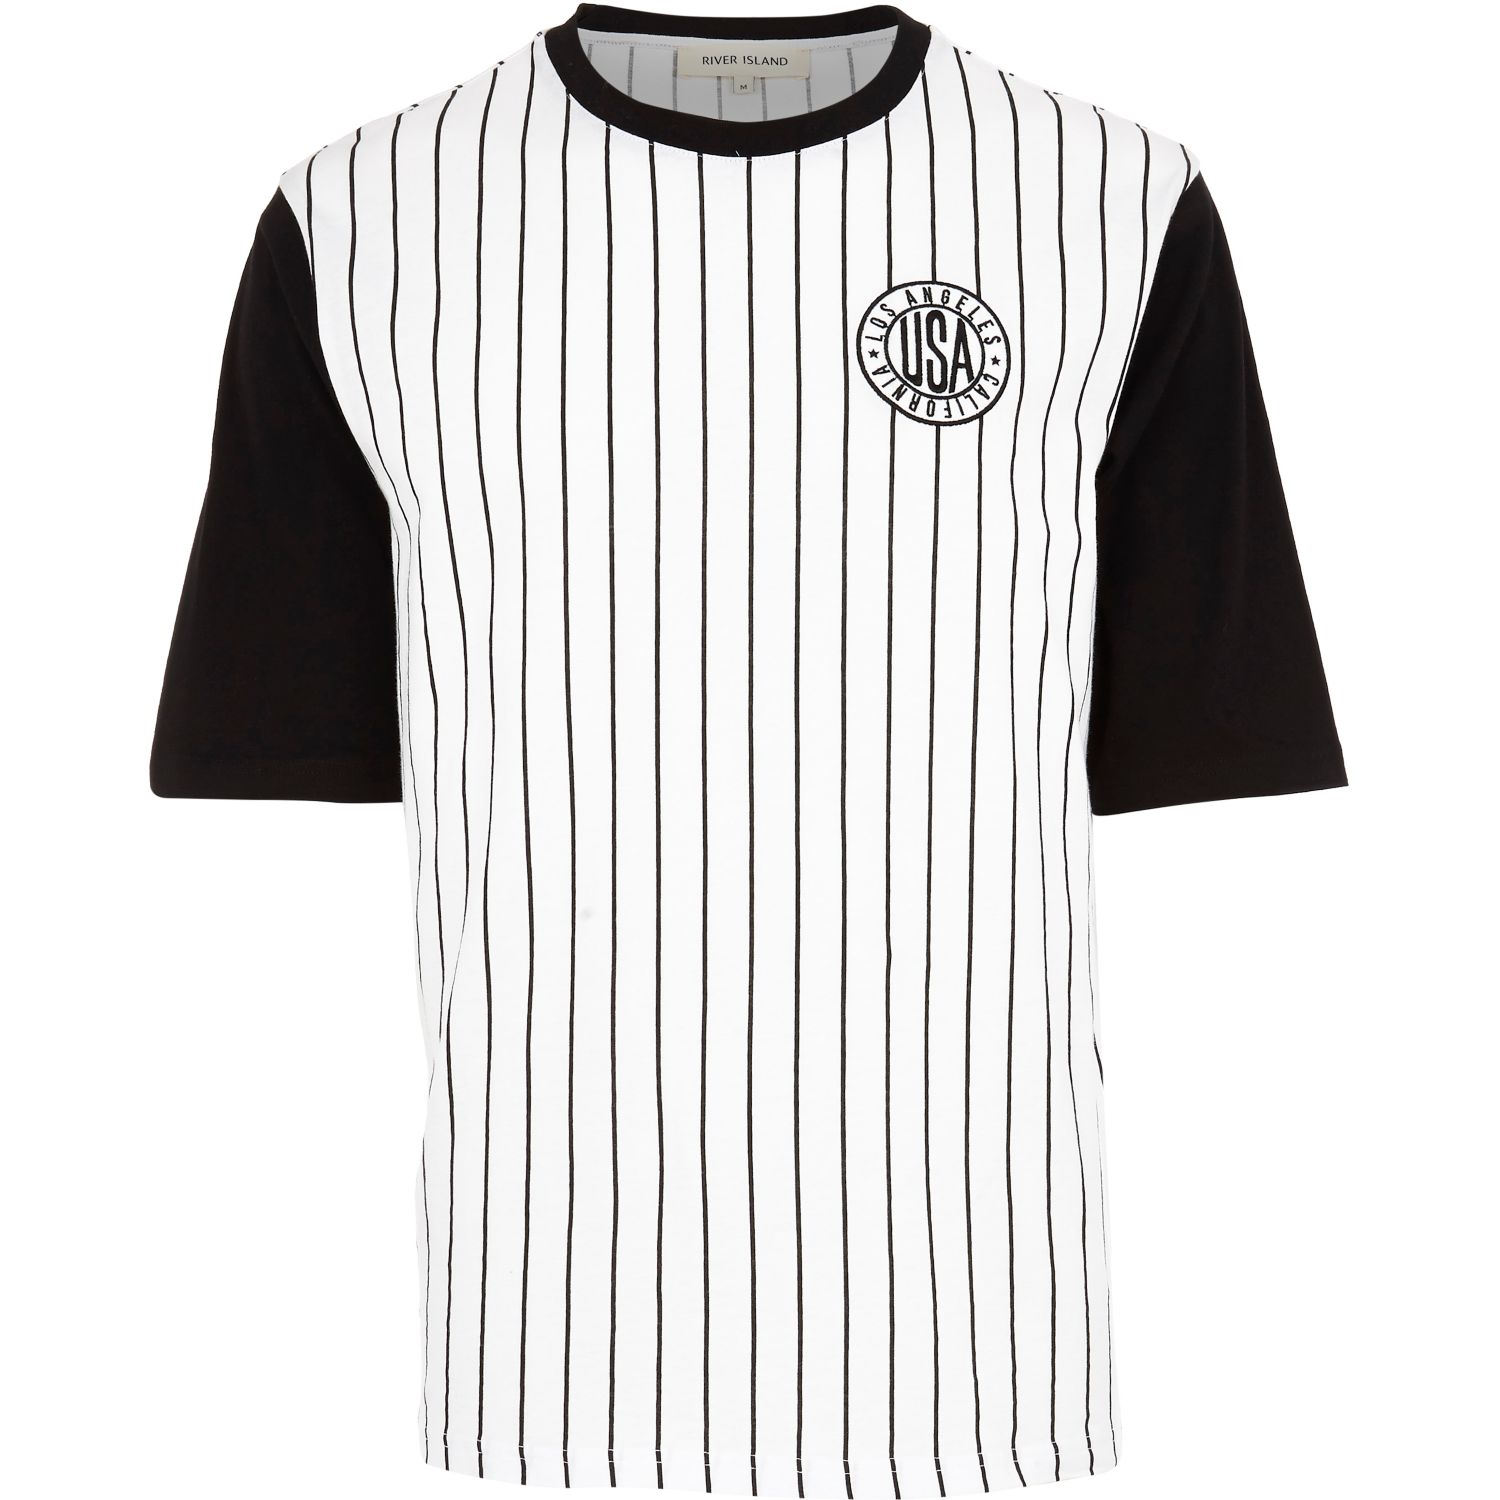 Online shopping for popular & hot Striped Baseball Shirt from Women's Clothing & Accessories, T-Shirts, Blouses & Shirts, Hoodies & Sweatshirts and more related Striped Baseball Shirt like striped baseball tshirt, baseball striped tee, striped baseball tee, baseball tee striped. Discover over of the best Selection Striped Baseball Shirt on s2w6s5q3to.gq